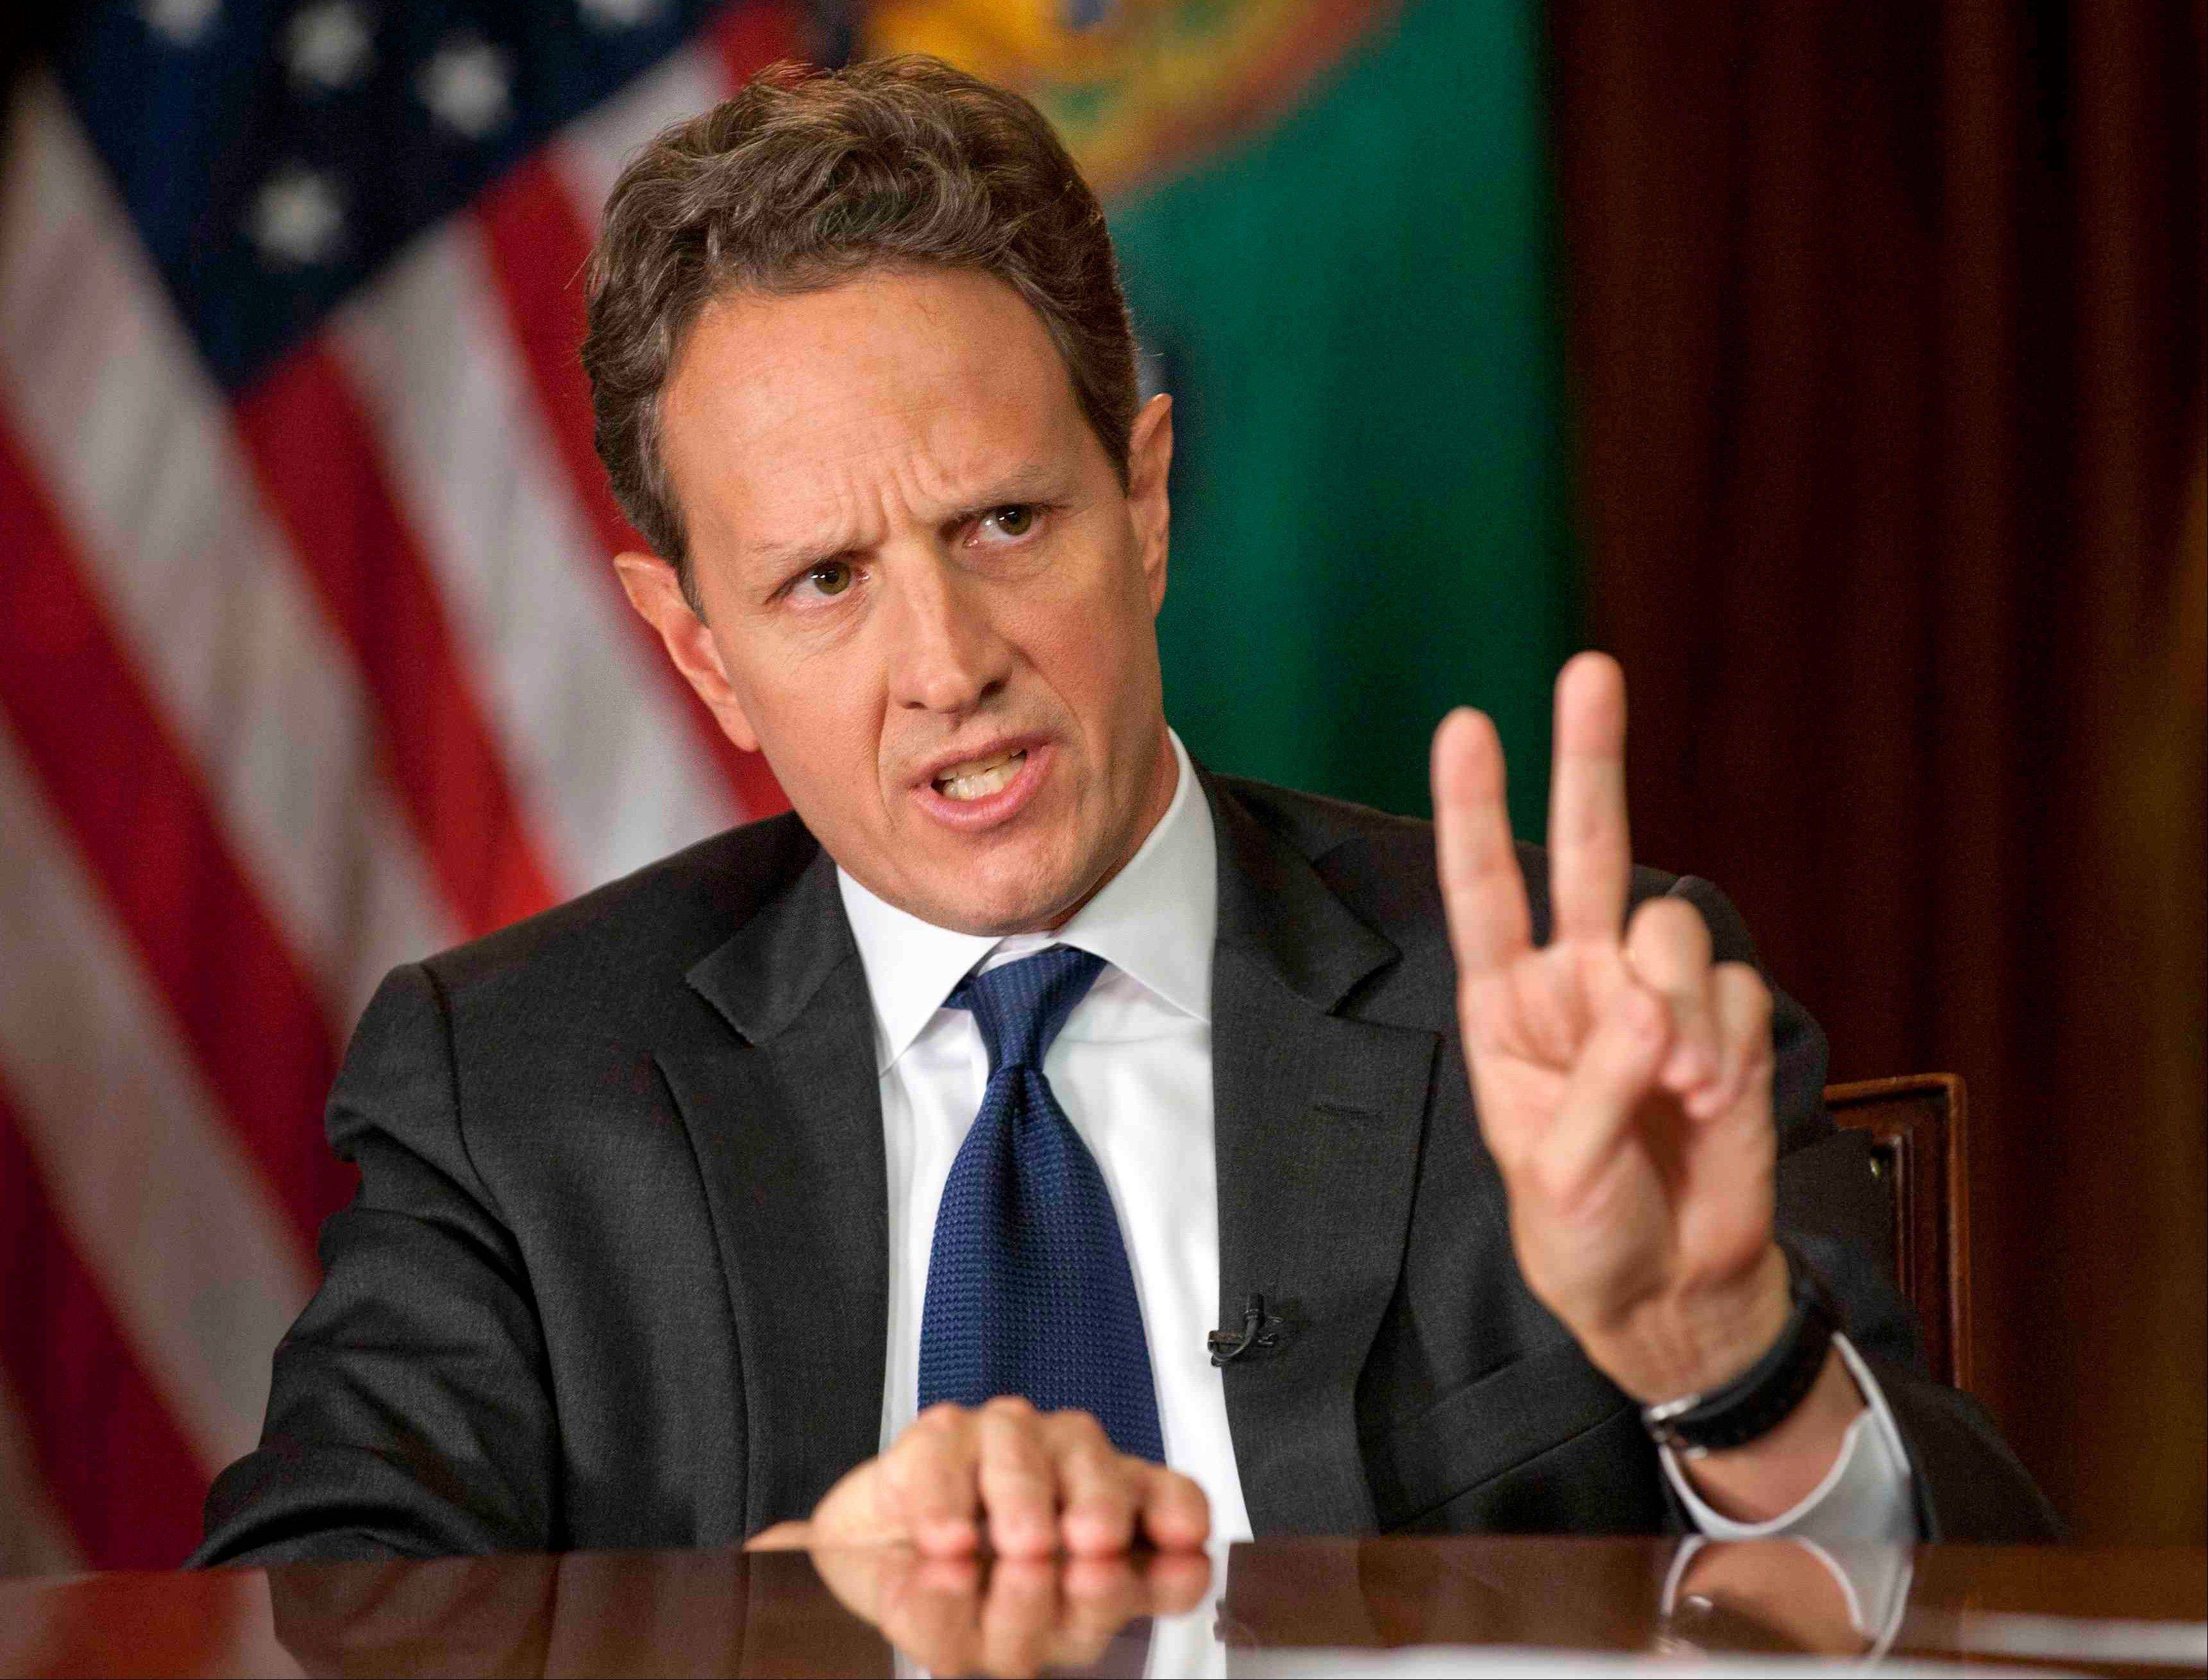 Treasury Secretary Timothy Geithner said Republicans have to stop using fuzzy �political math� and say how much they are willing to raise tax rates on the wealthiest 2 percent of Americans and then specify the spending cuts they want.